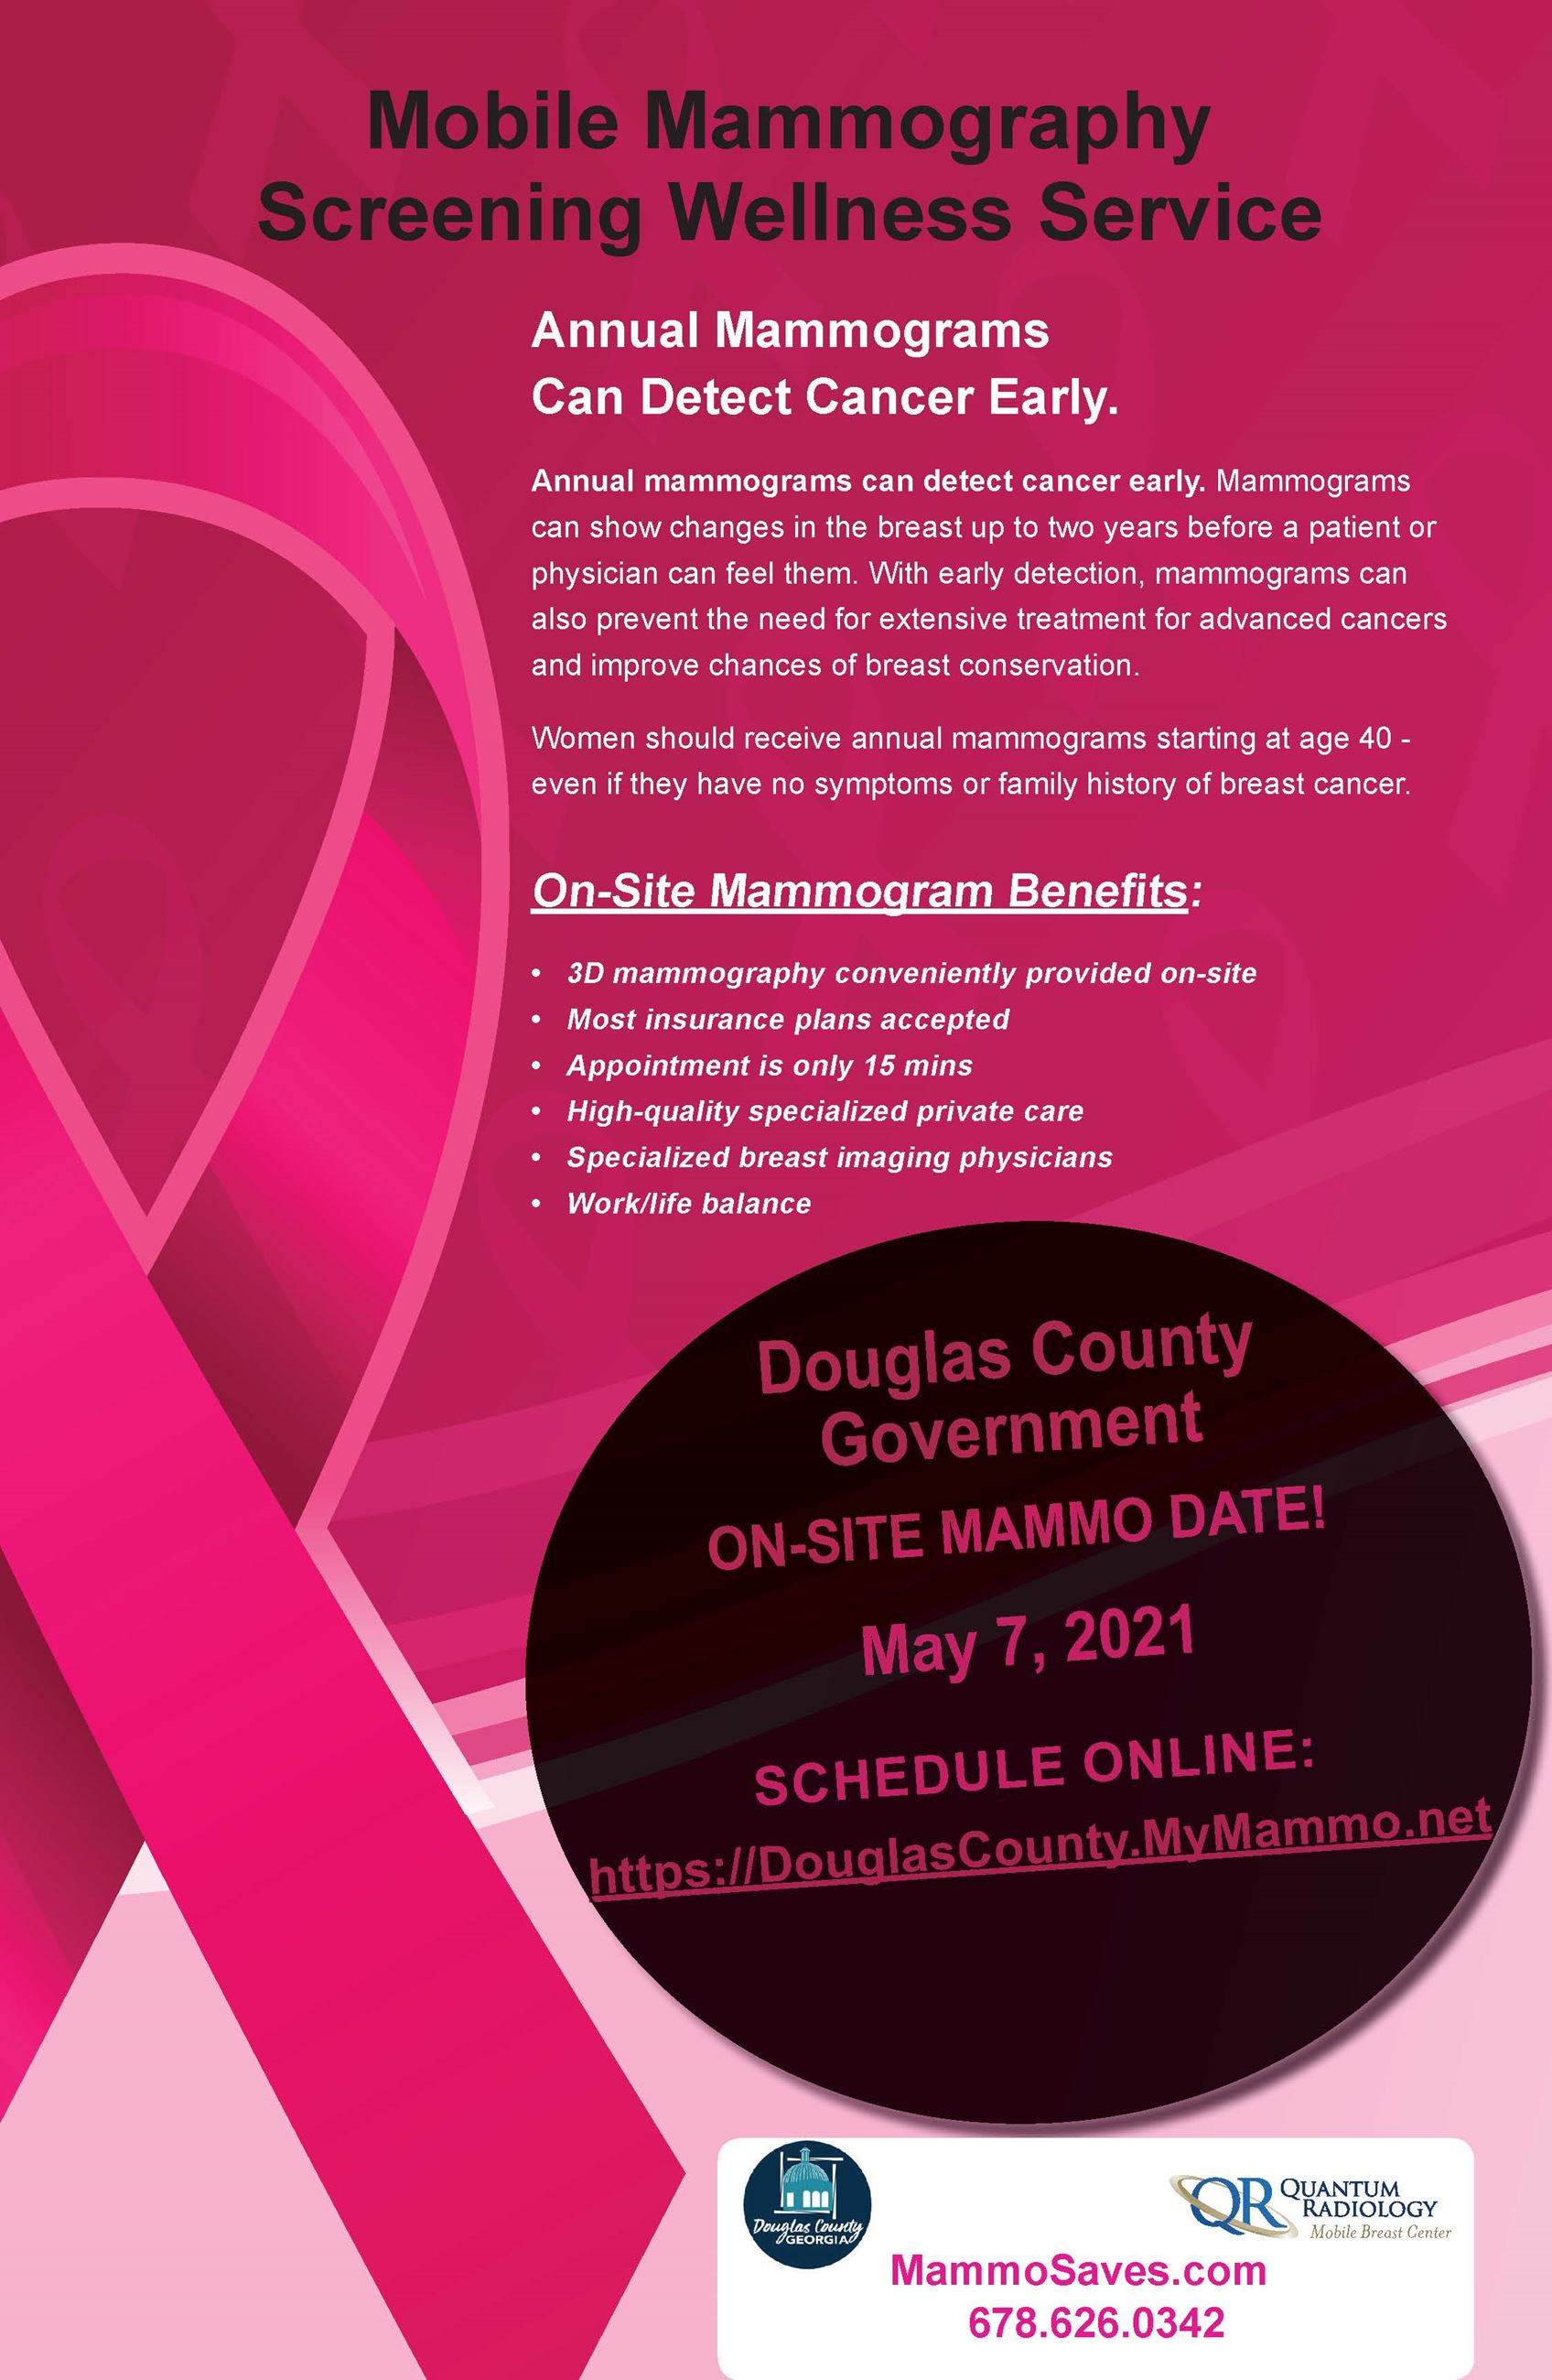 Douglas County Government - QR Mobile Mammo Poster 5-7-21